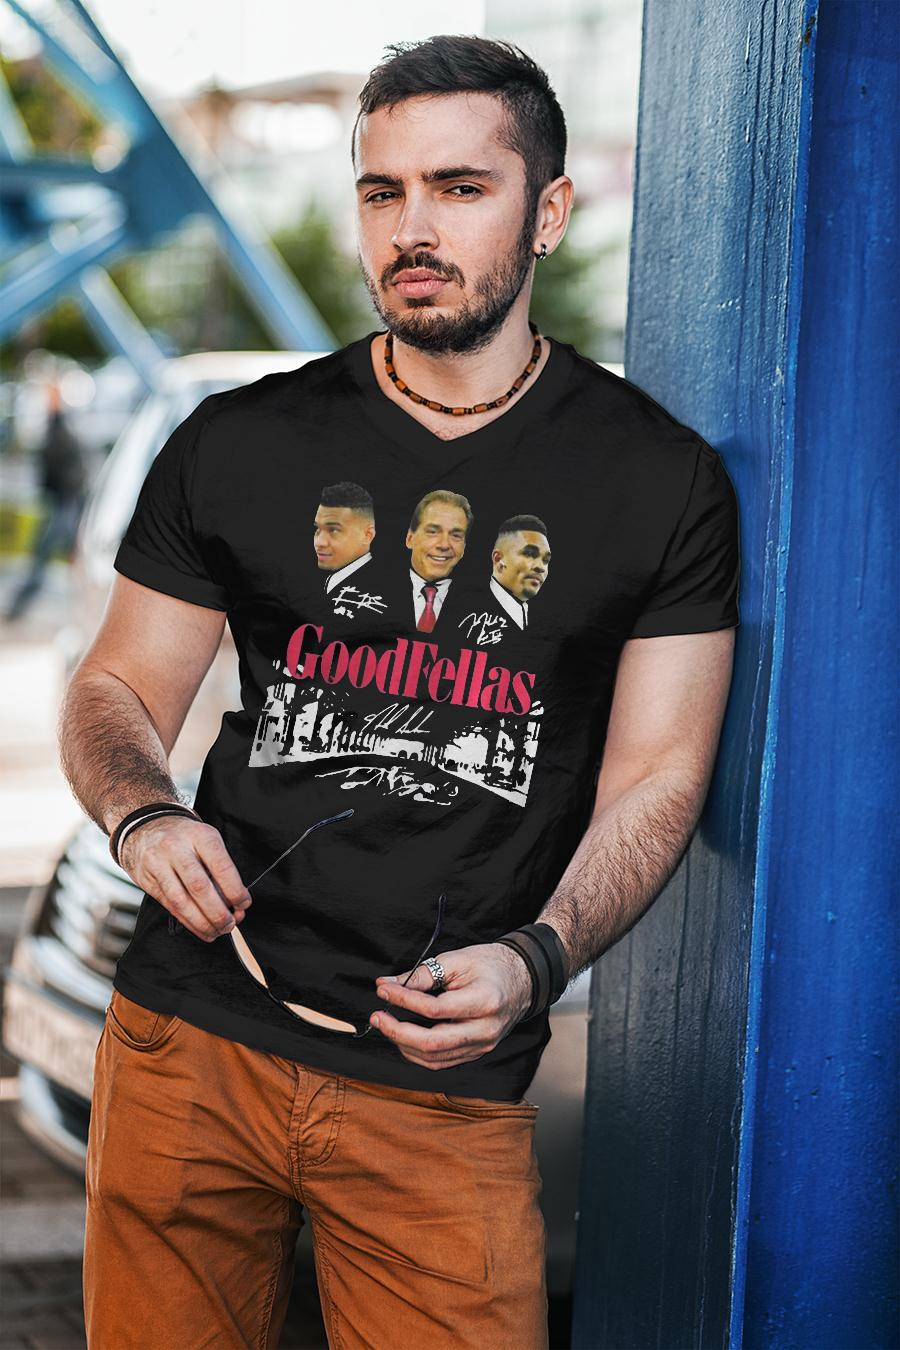 Goodfellas tua tagovailoa nick saban jalen hurts roll tide shirt unisex